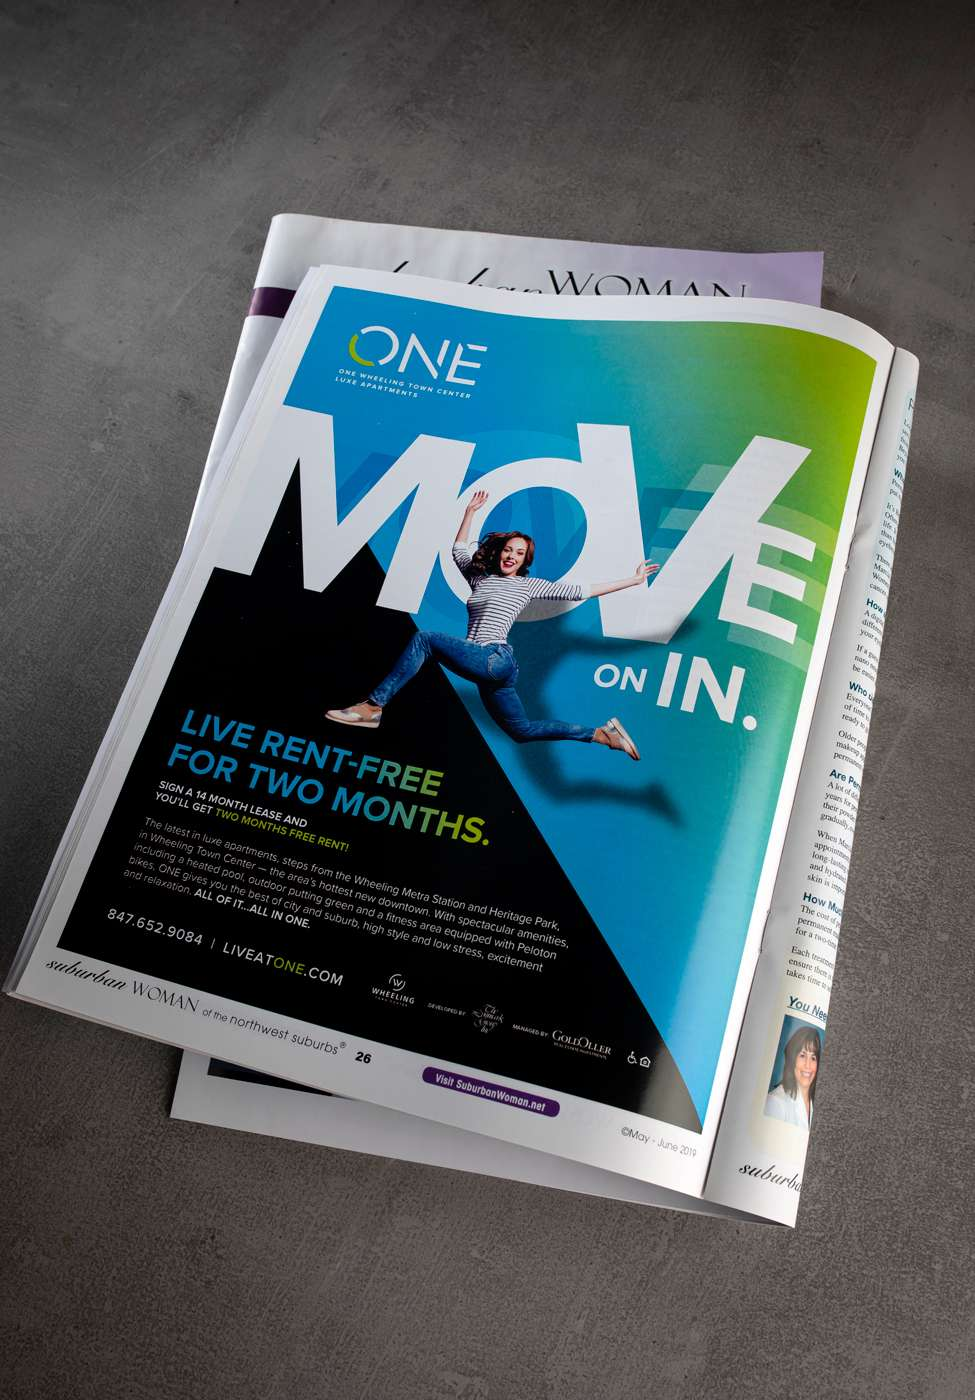 Print magazine ad created for ONE Wheeling Town Center using the MOVE creative campaign